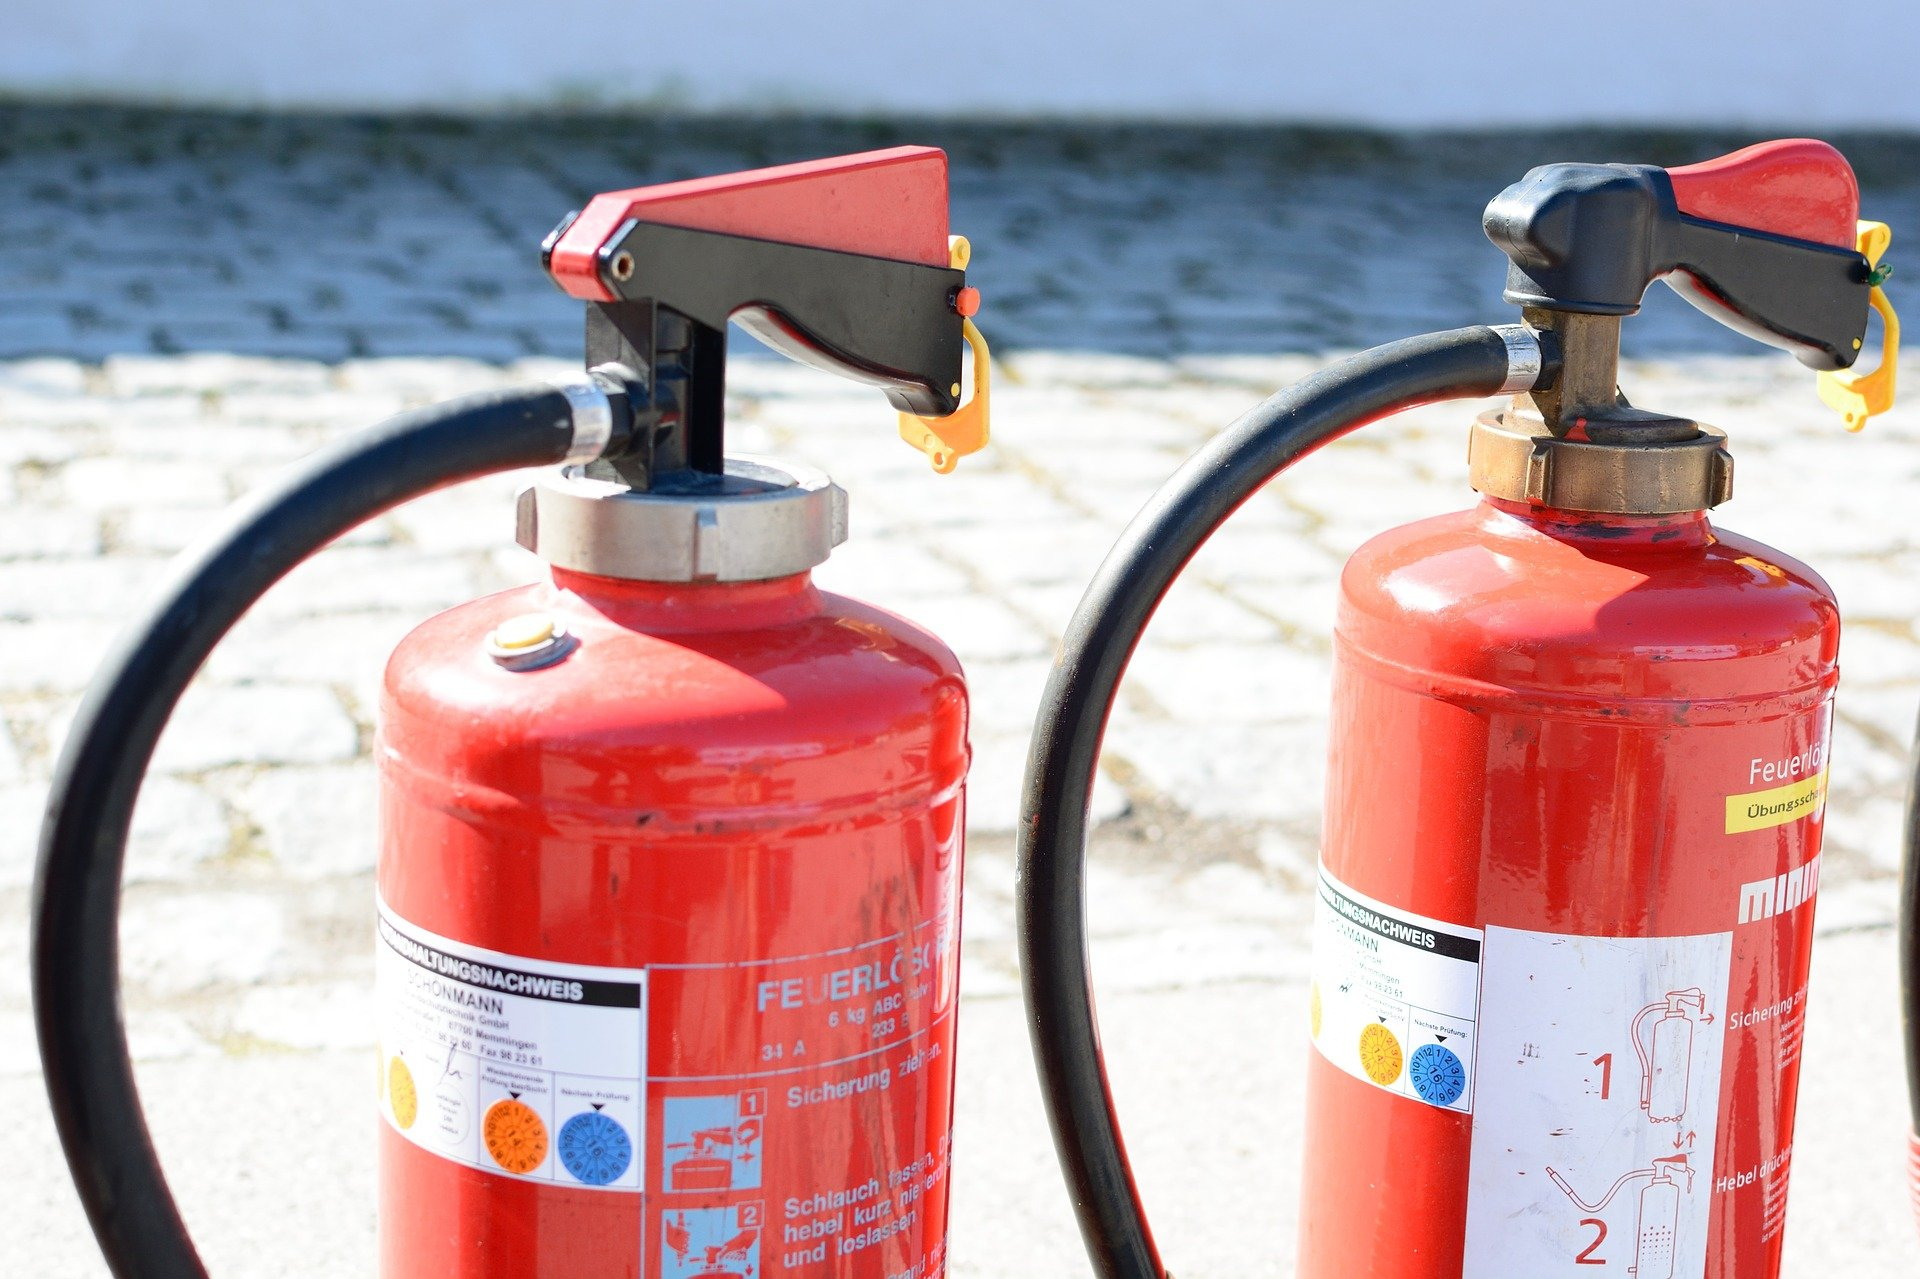 Use of portable and wheeled fire extinguishers